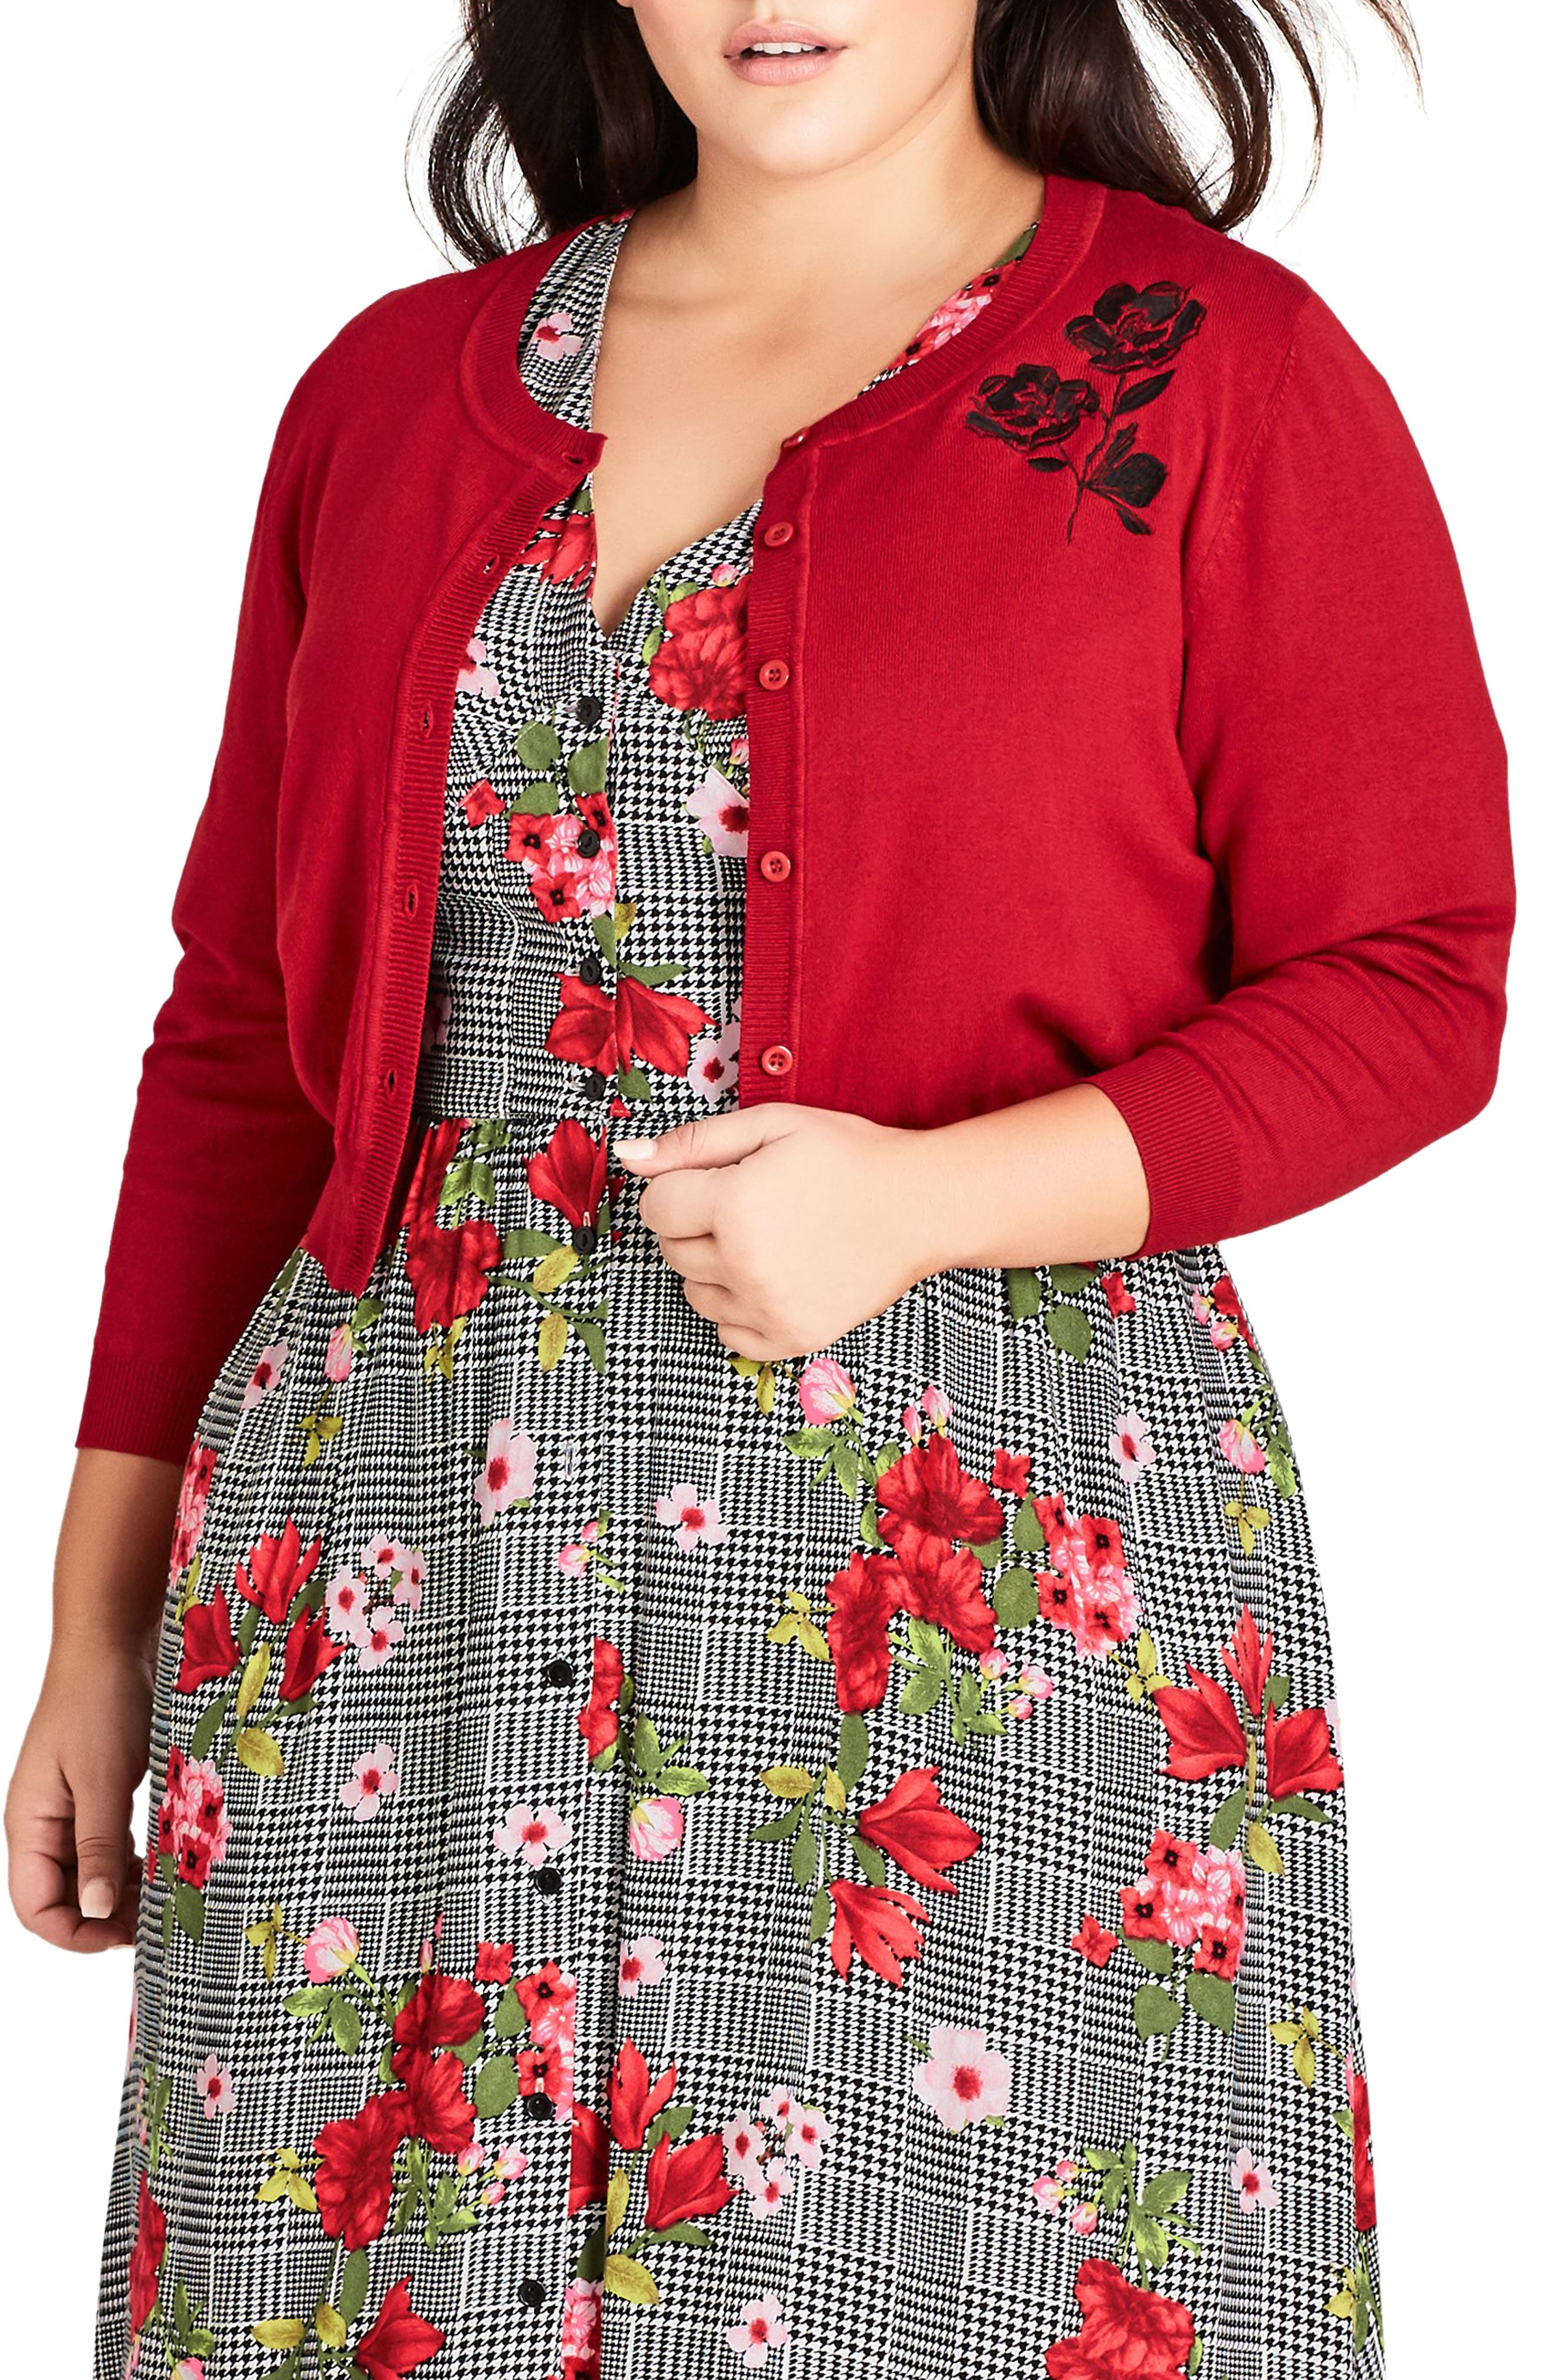 1950s Sweaters, 50s Cardigans, 50s Jumpers Plus Size Womens City Chic Cute Poppy Cardigan $59.00 AT vintagedancer.com